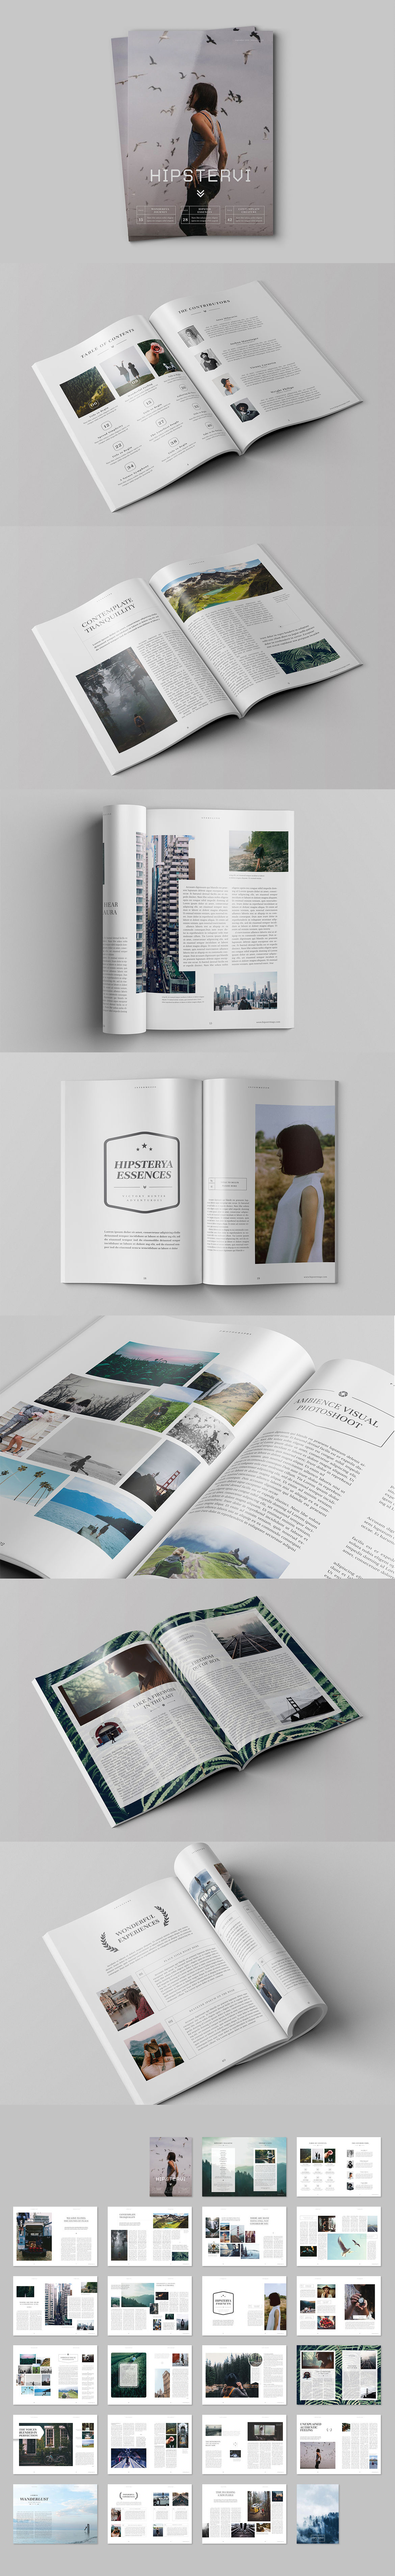 Hipster Journey Magazine Template InDesign INDD | Diseño | Pinterest ...